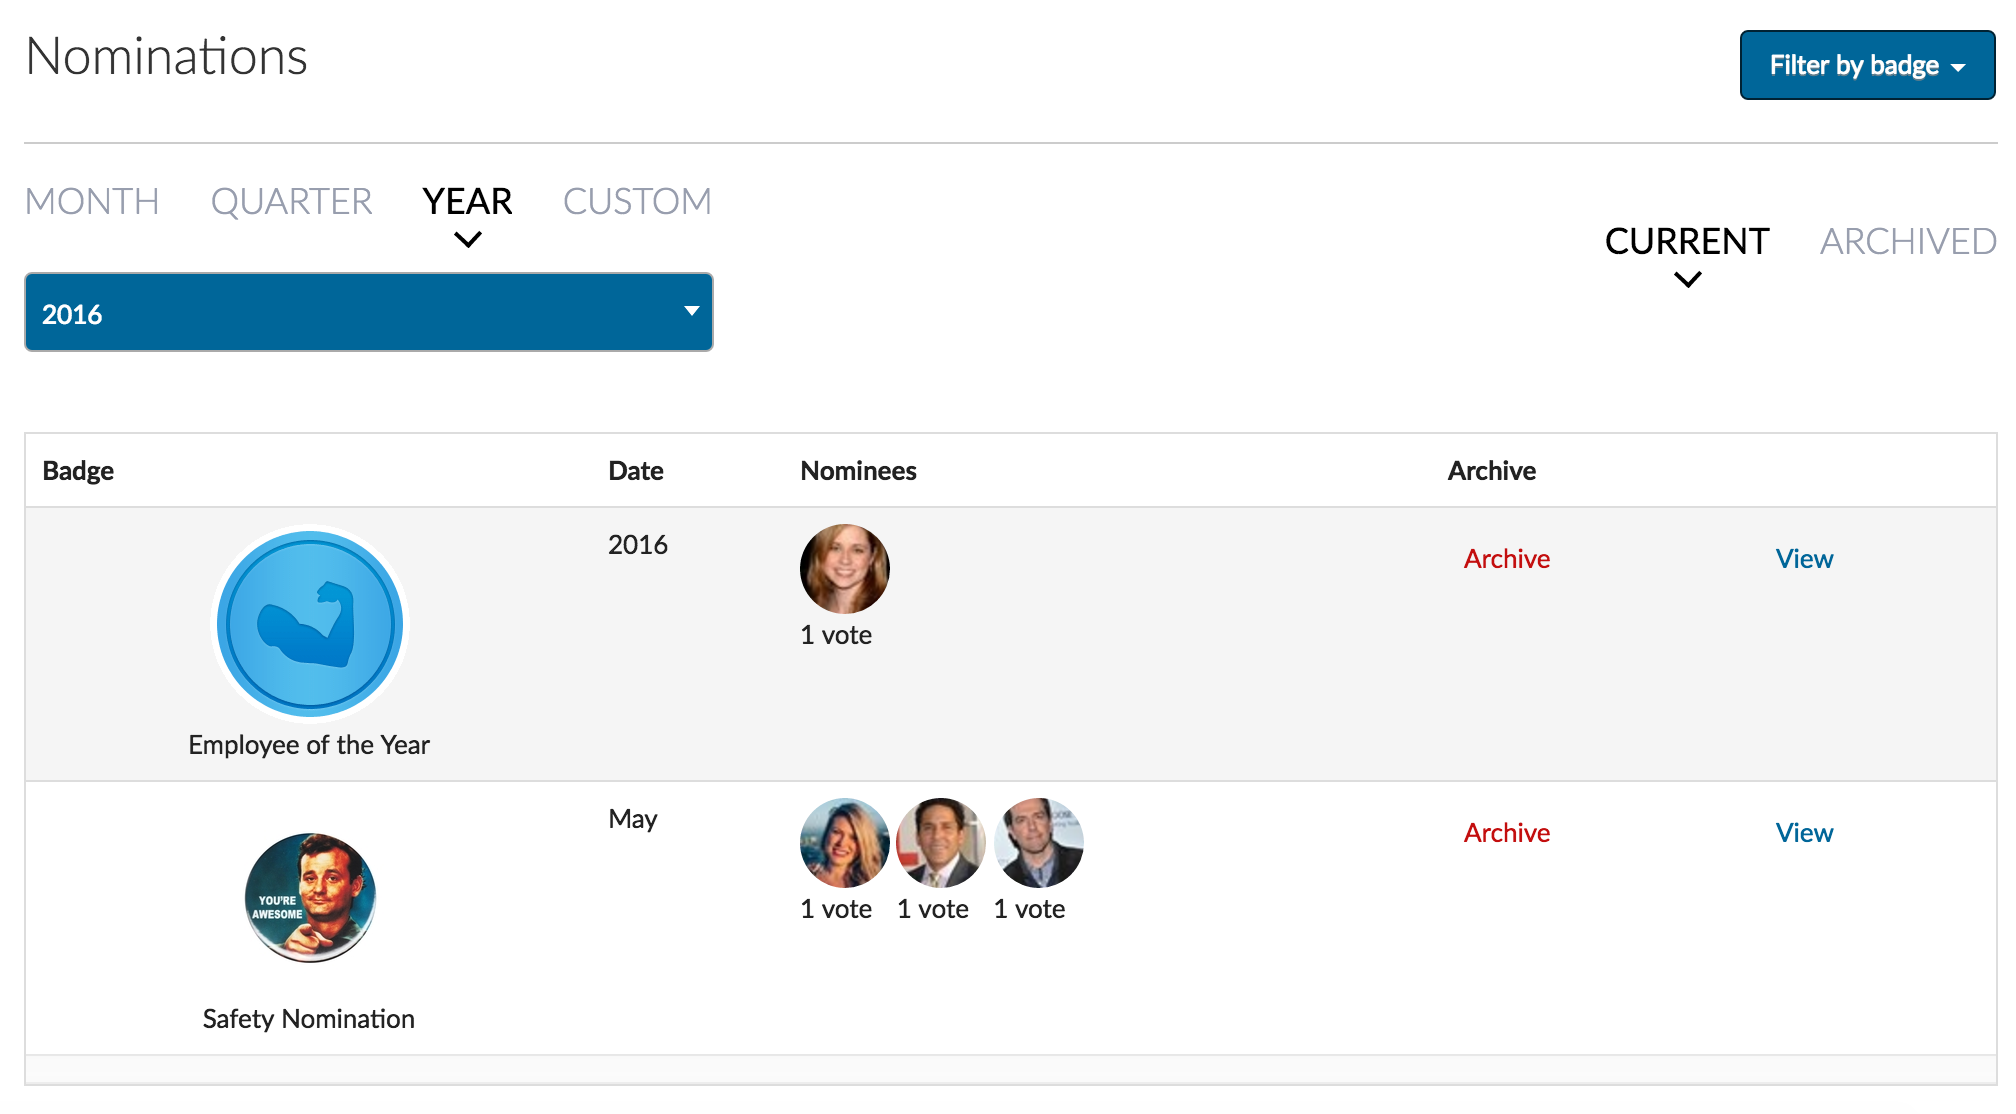 Viewing nominations in Admin Dashboard